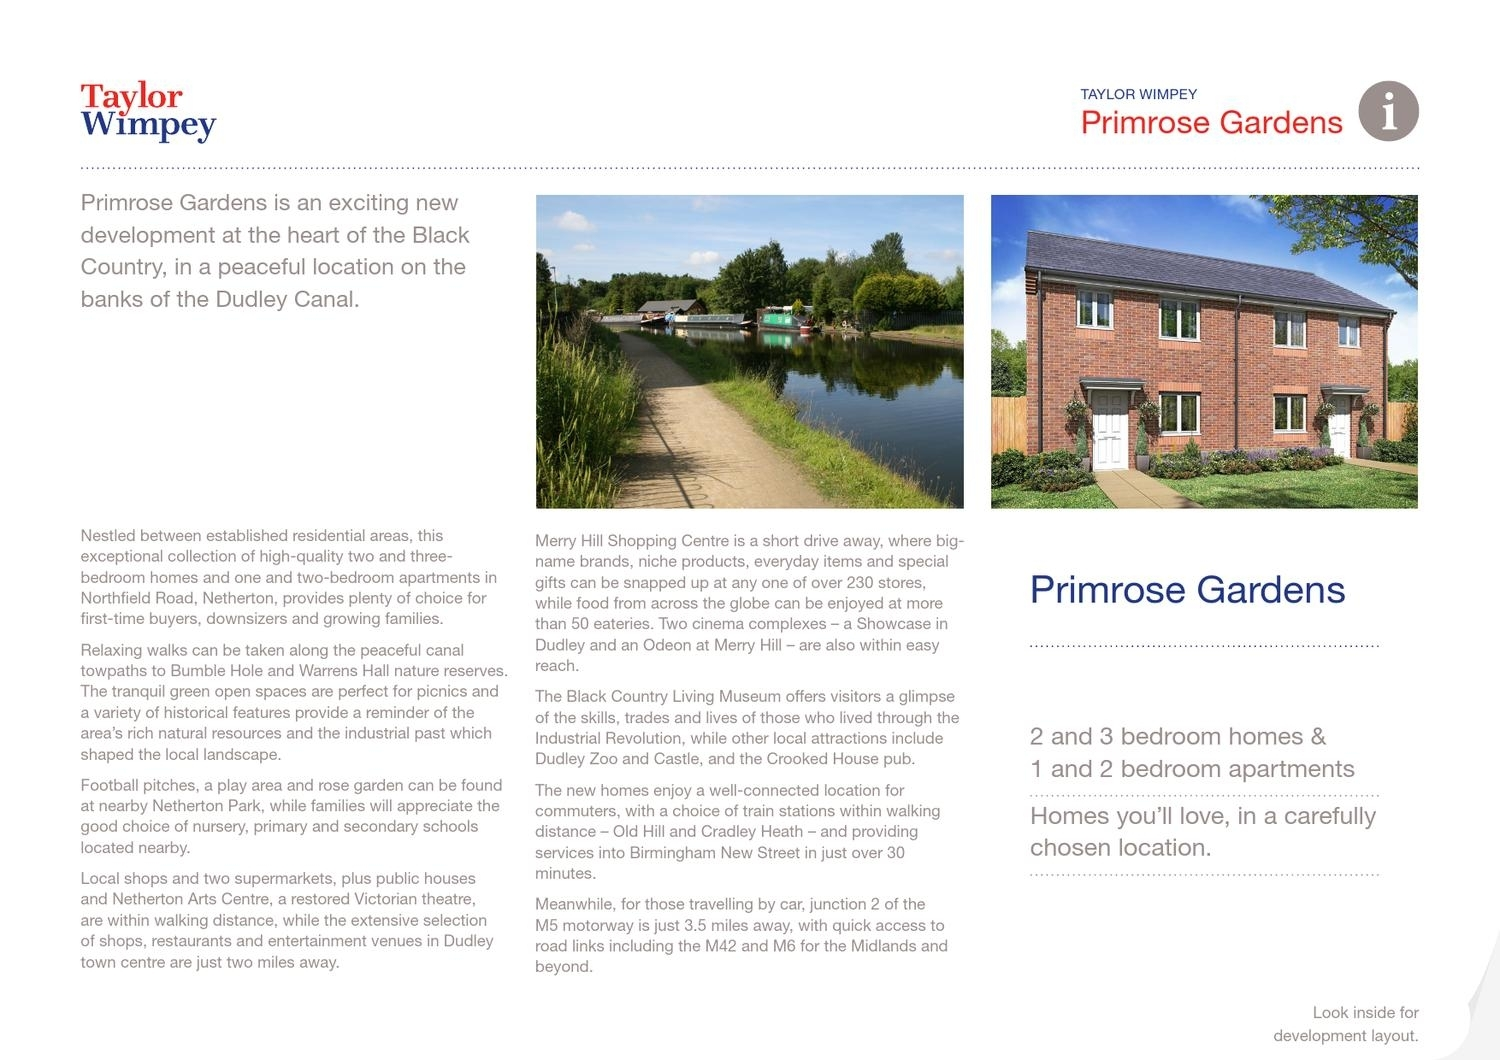 Taylor Wimpey Primrose Gardens By Newhomesforsale.co.uk - Issuu throughout Taylor Gardens Apartments